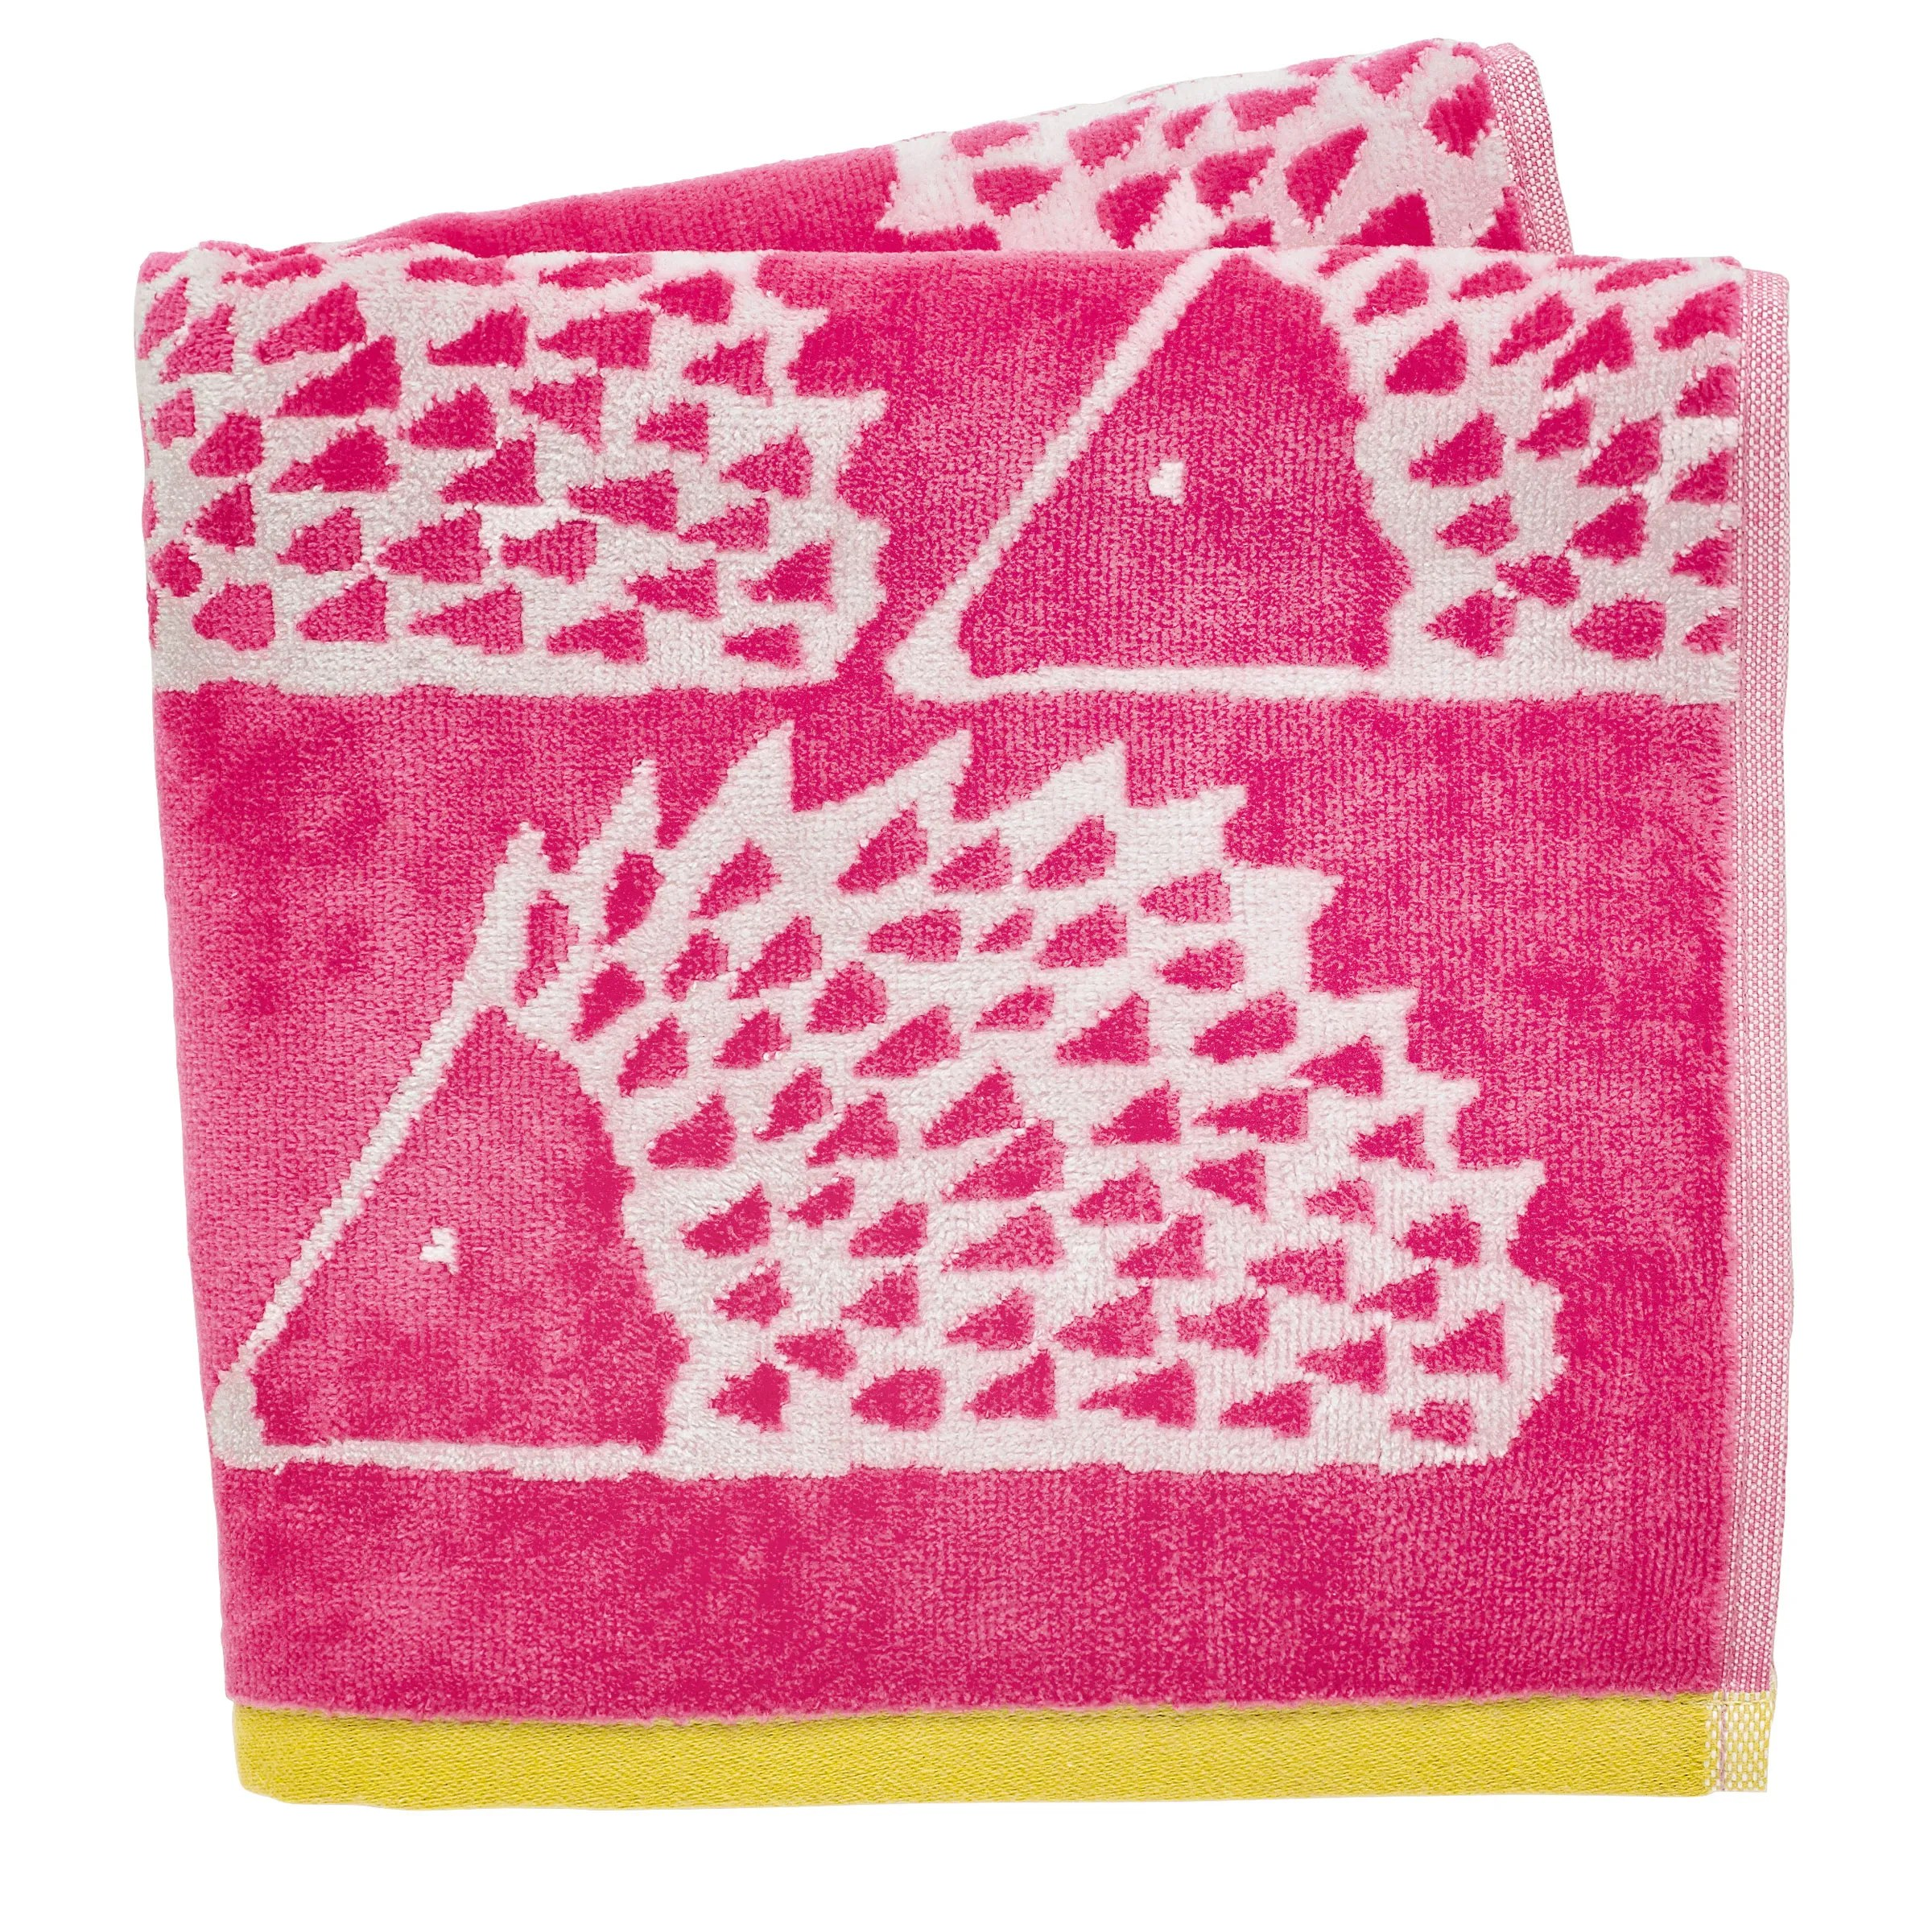 Pink Towels Buy Cheap Pink Bath Towels Compare Home Textiles Prices